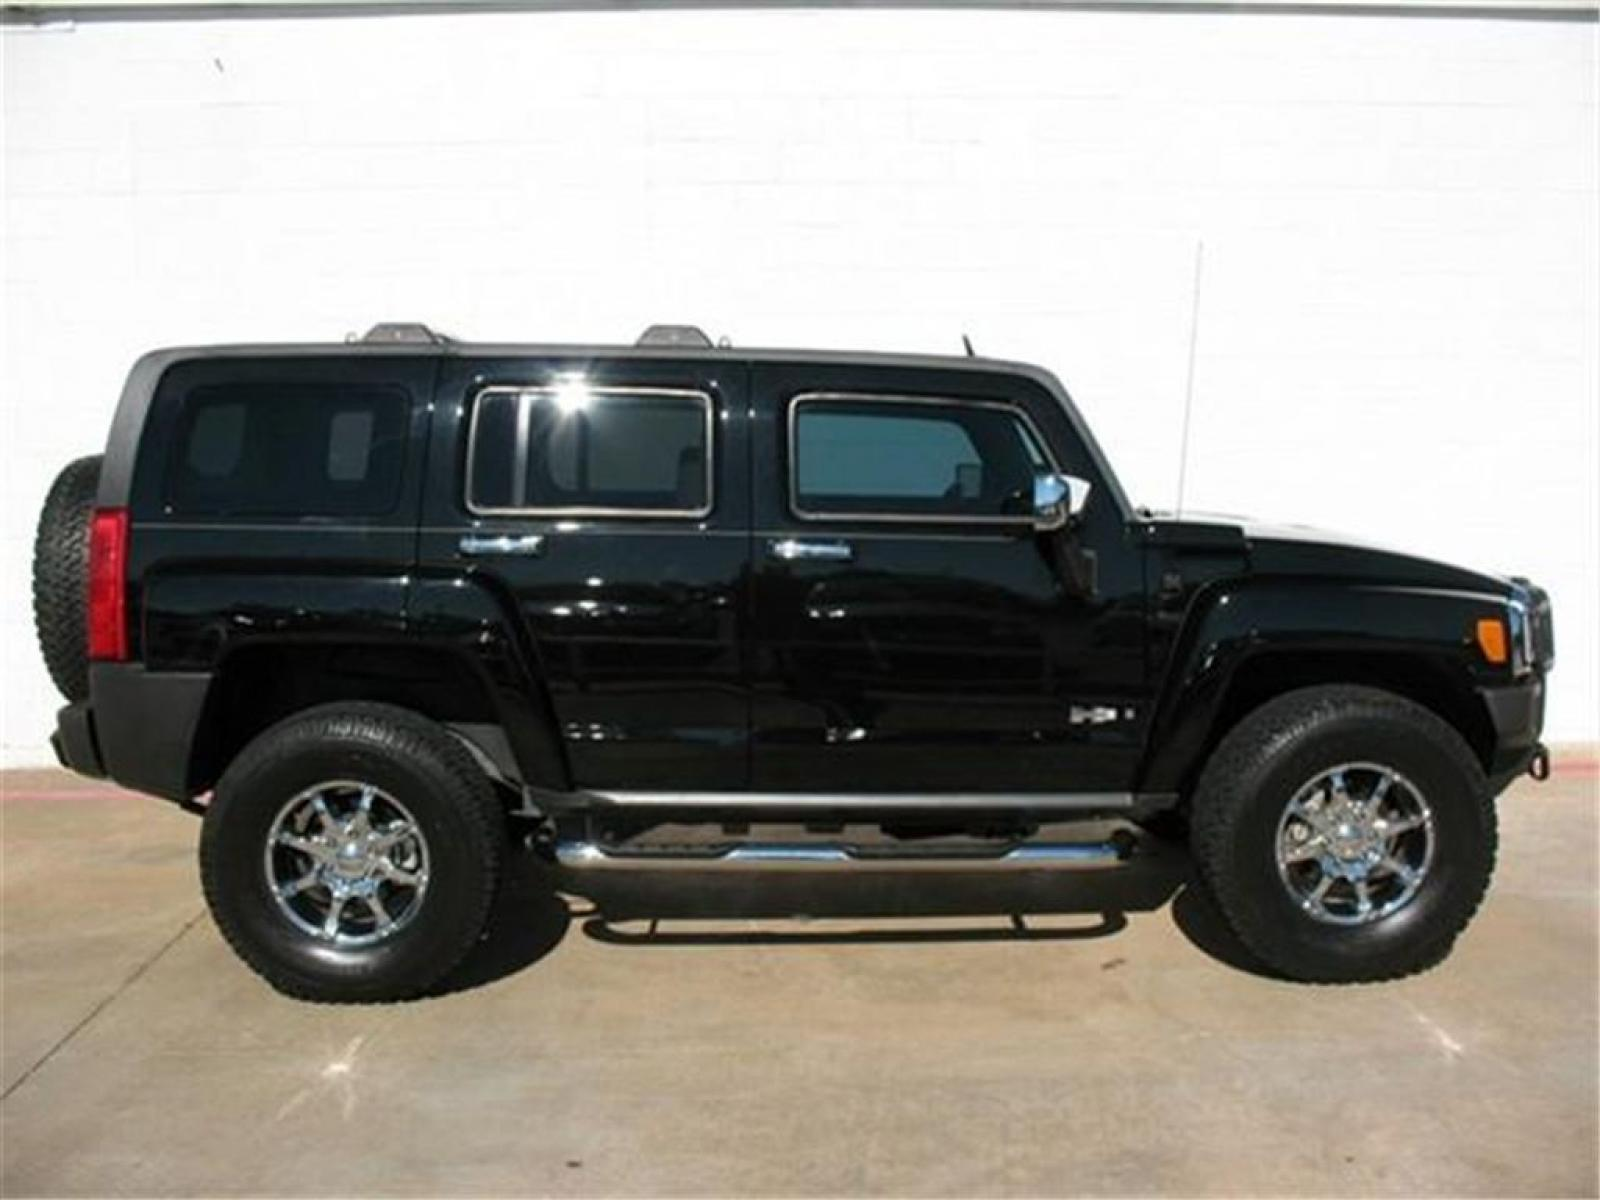 2006 hummer h3 information and photos zombiedrive. Black Bedroom Furniture Sets. Home Design Ideas